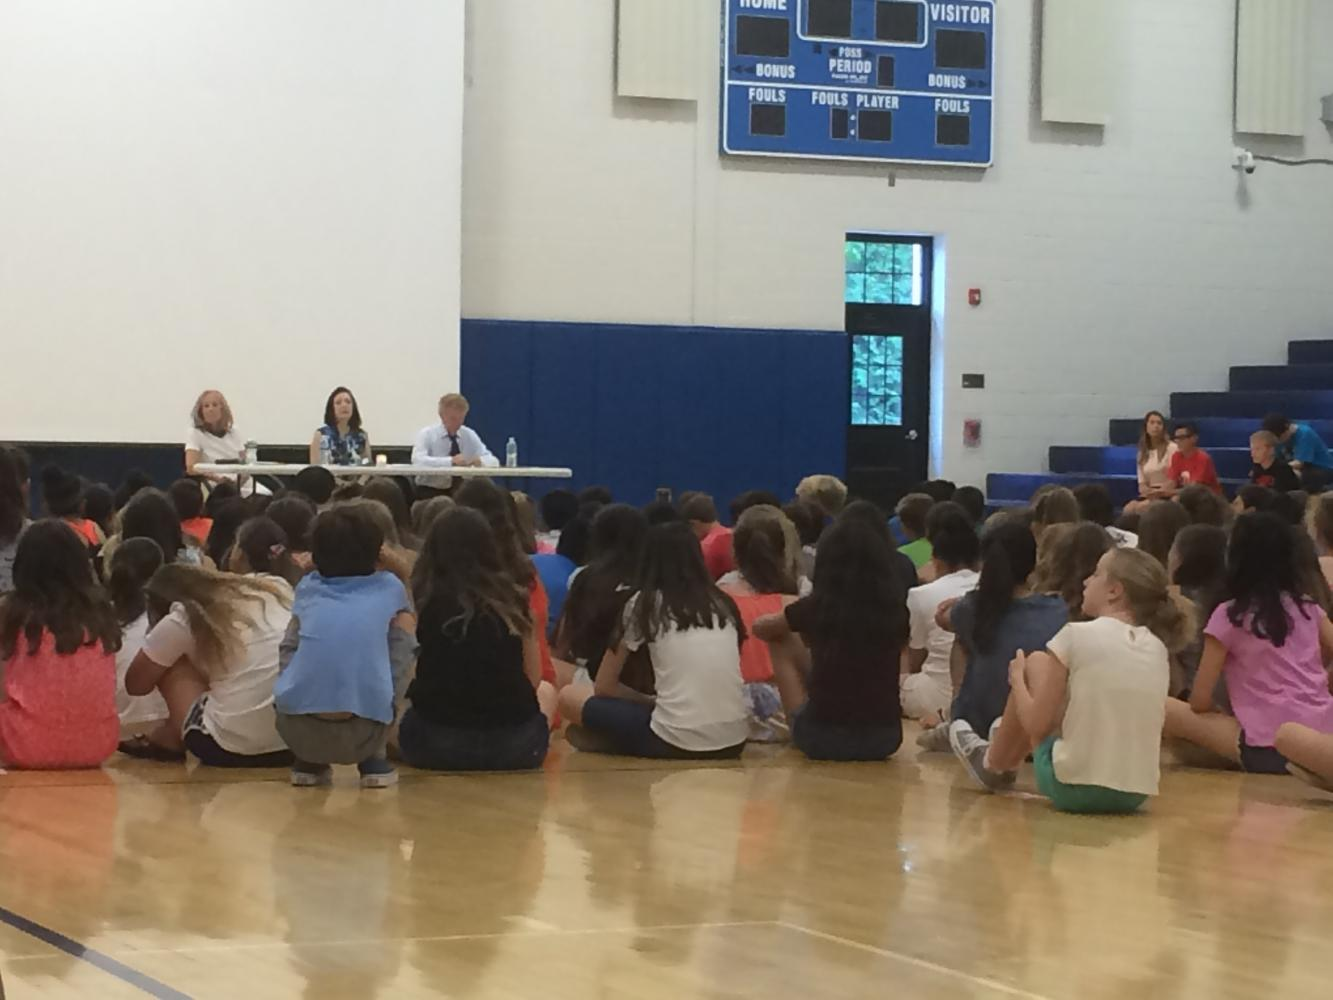 From left to right; Vera Chapman, Barbara Wind; Michael Zeiger; Students watch survivors discuss the Holocaust in the George Washington Middle School gym. Moments before, a candle was lit to remember victims of the Holocaust.